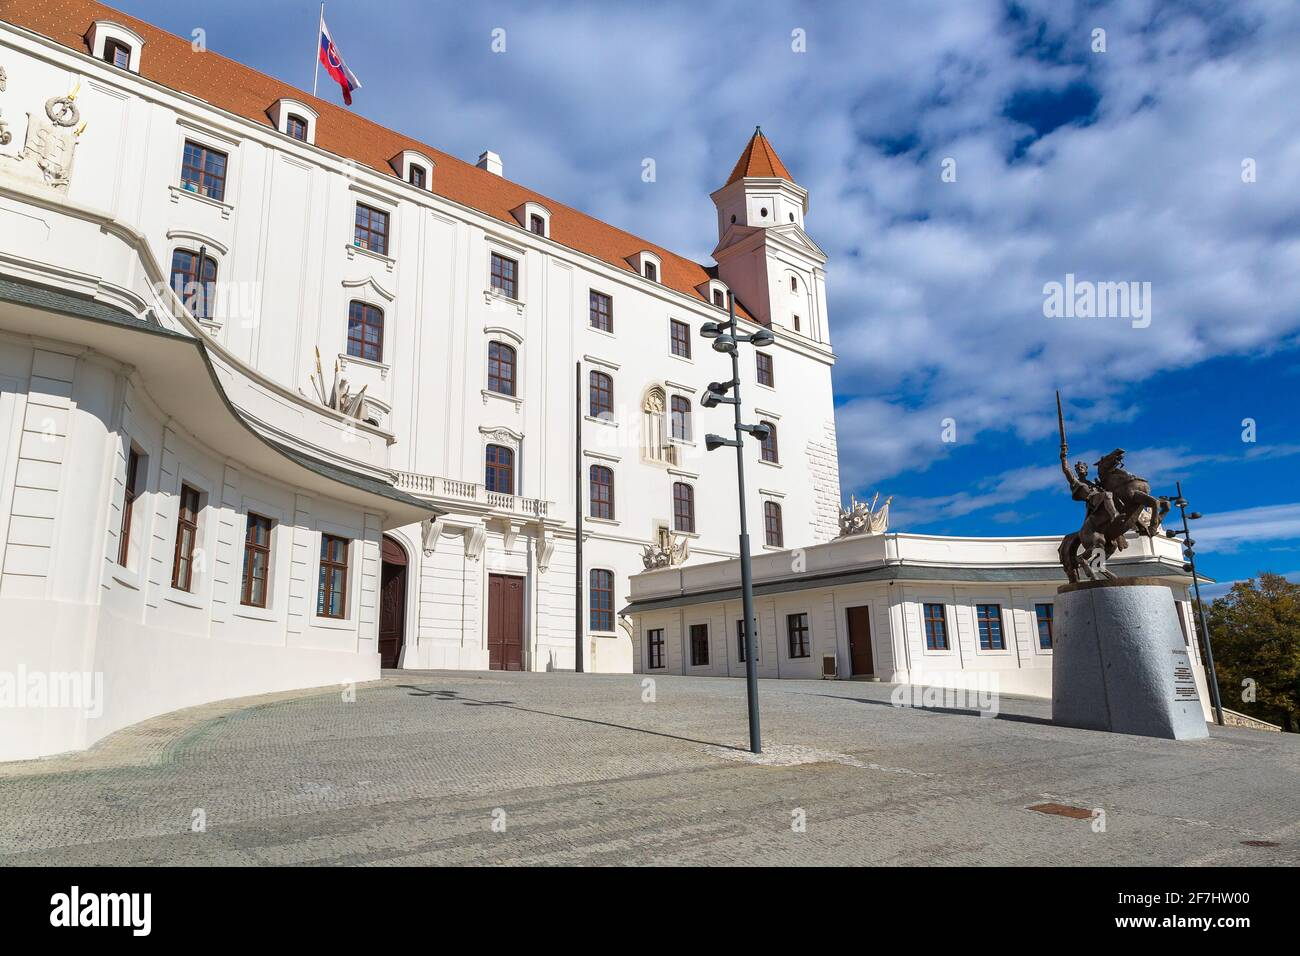 Medieval castle on a hill in a summer day in Bratislava, Slovakia Stock Photo